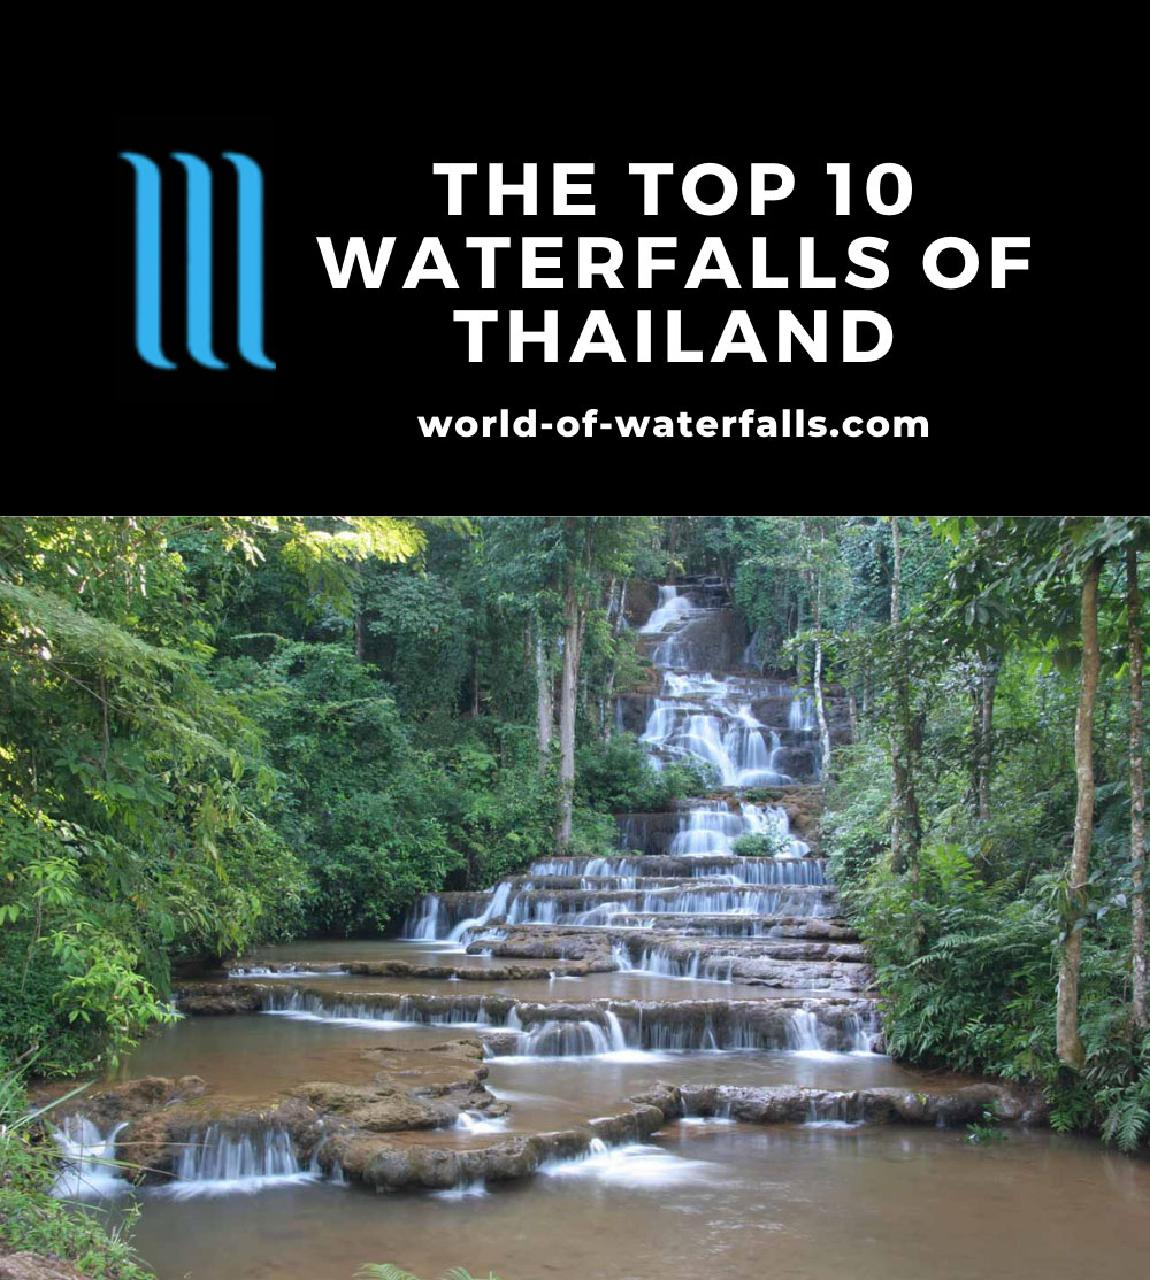 The Top 10 Waterfalls of Thailand